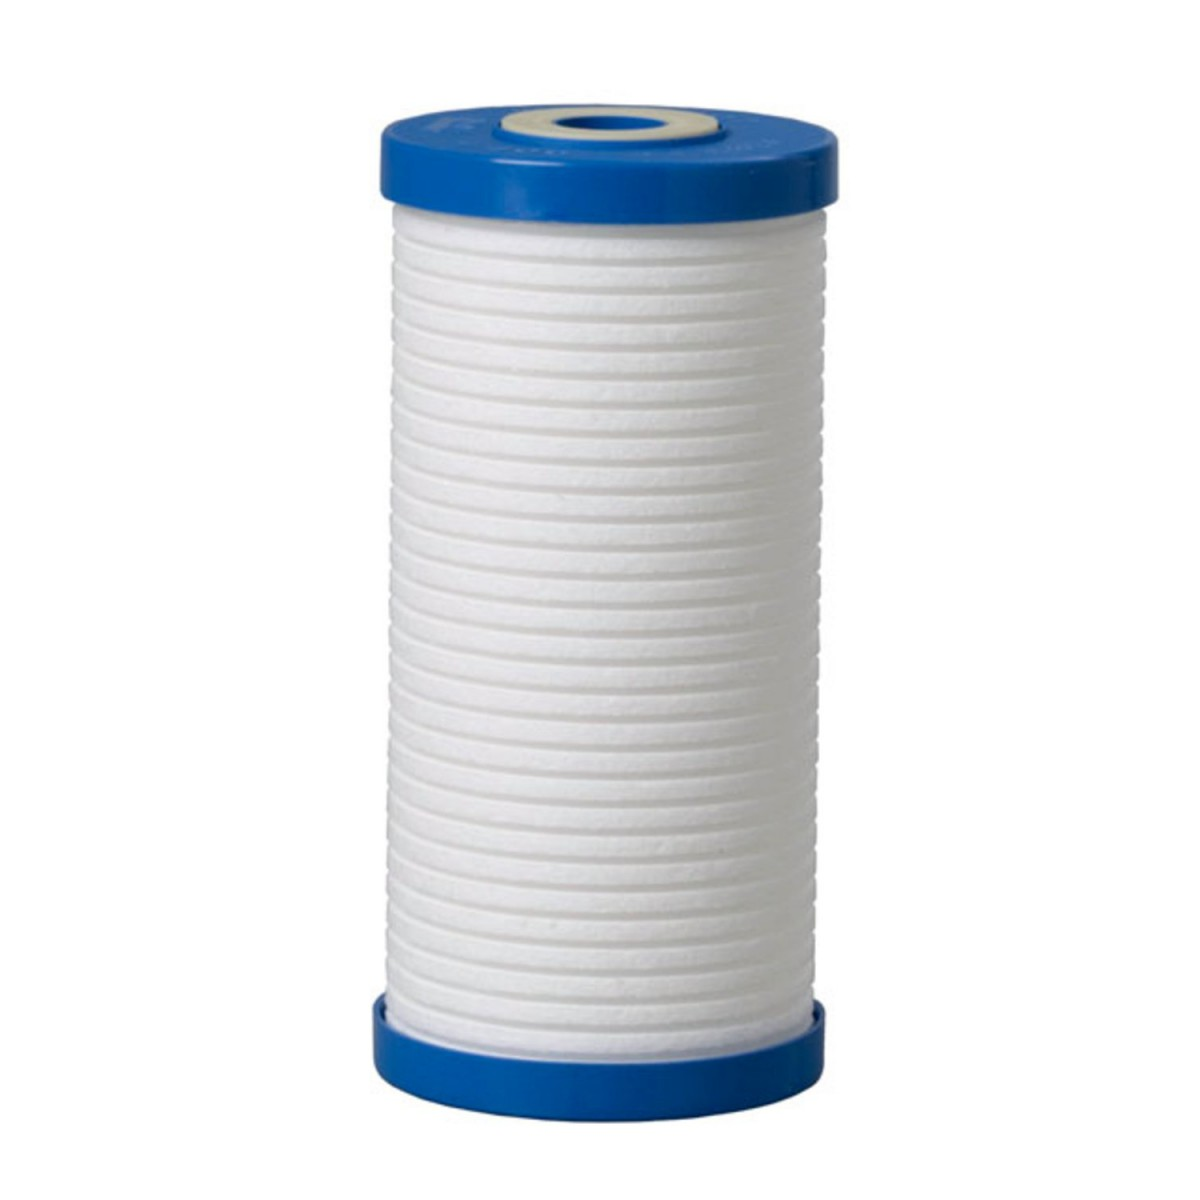 3m Aqua Pure Ap810 Whole House Water Filter Cartridge